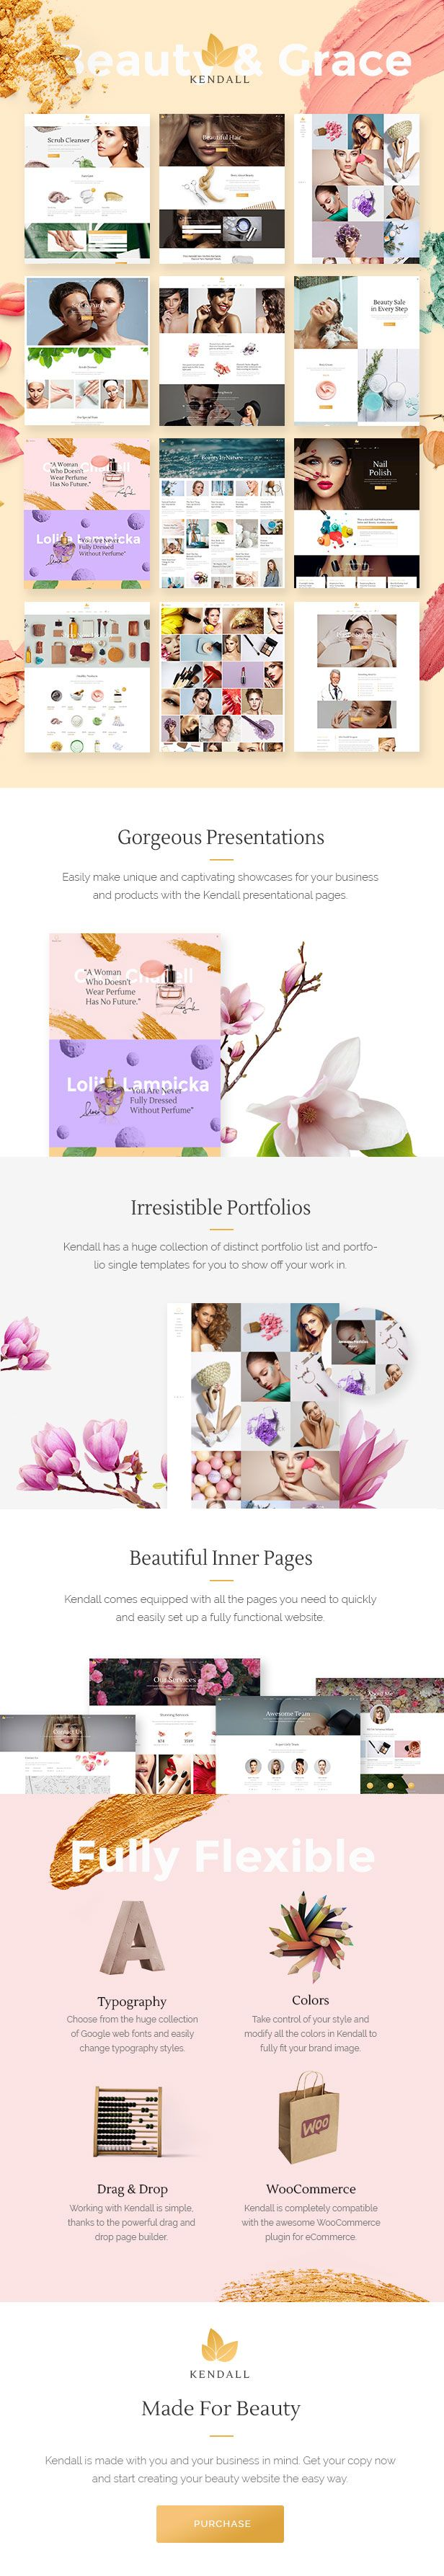 Kendall - A Stylish Theme for Spa, Hair & Beauty Salons #wordpress #cosmetics #makeup • Download theme ➝ https://themeforest.net/item/kendall-a-stylish-theme-for-spa-hair-beauty-salons/18601371?ref=pxcr